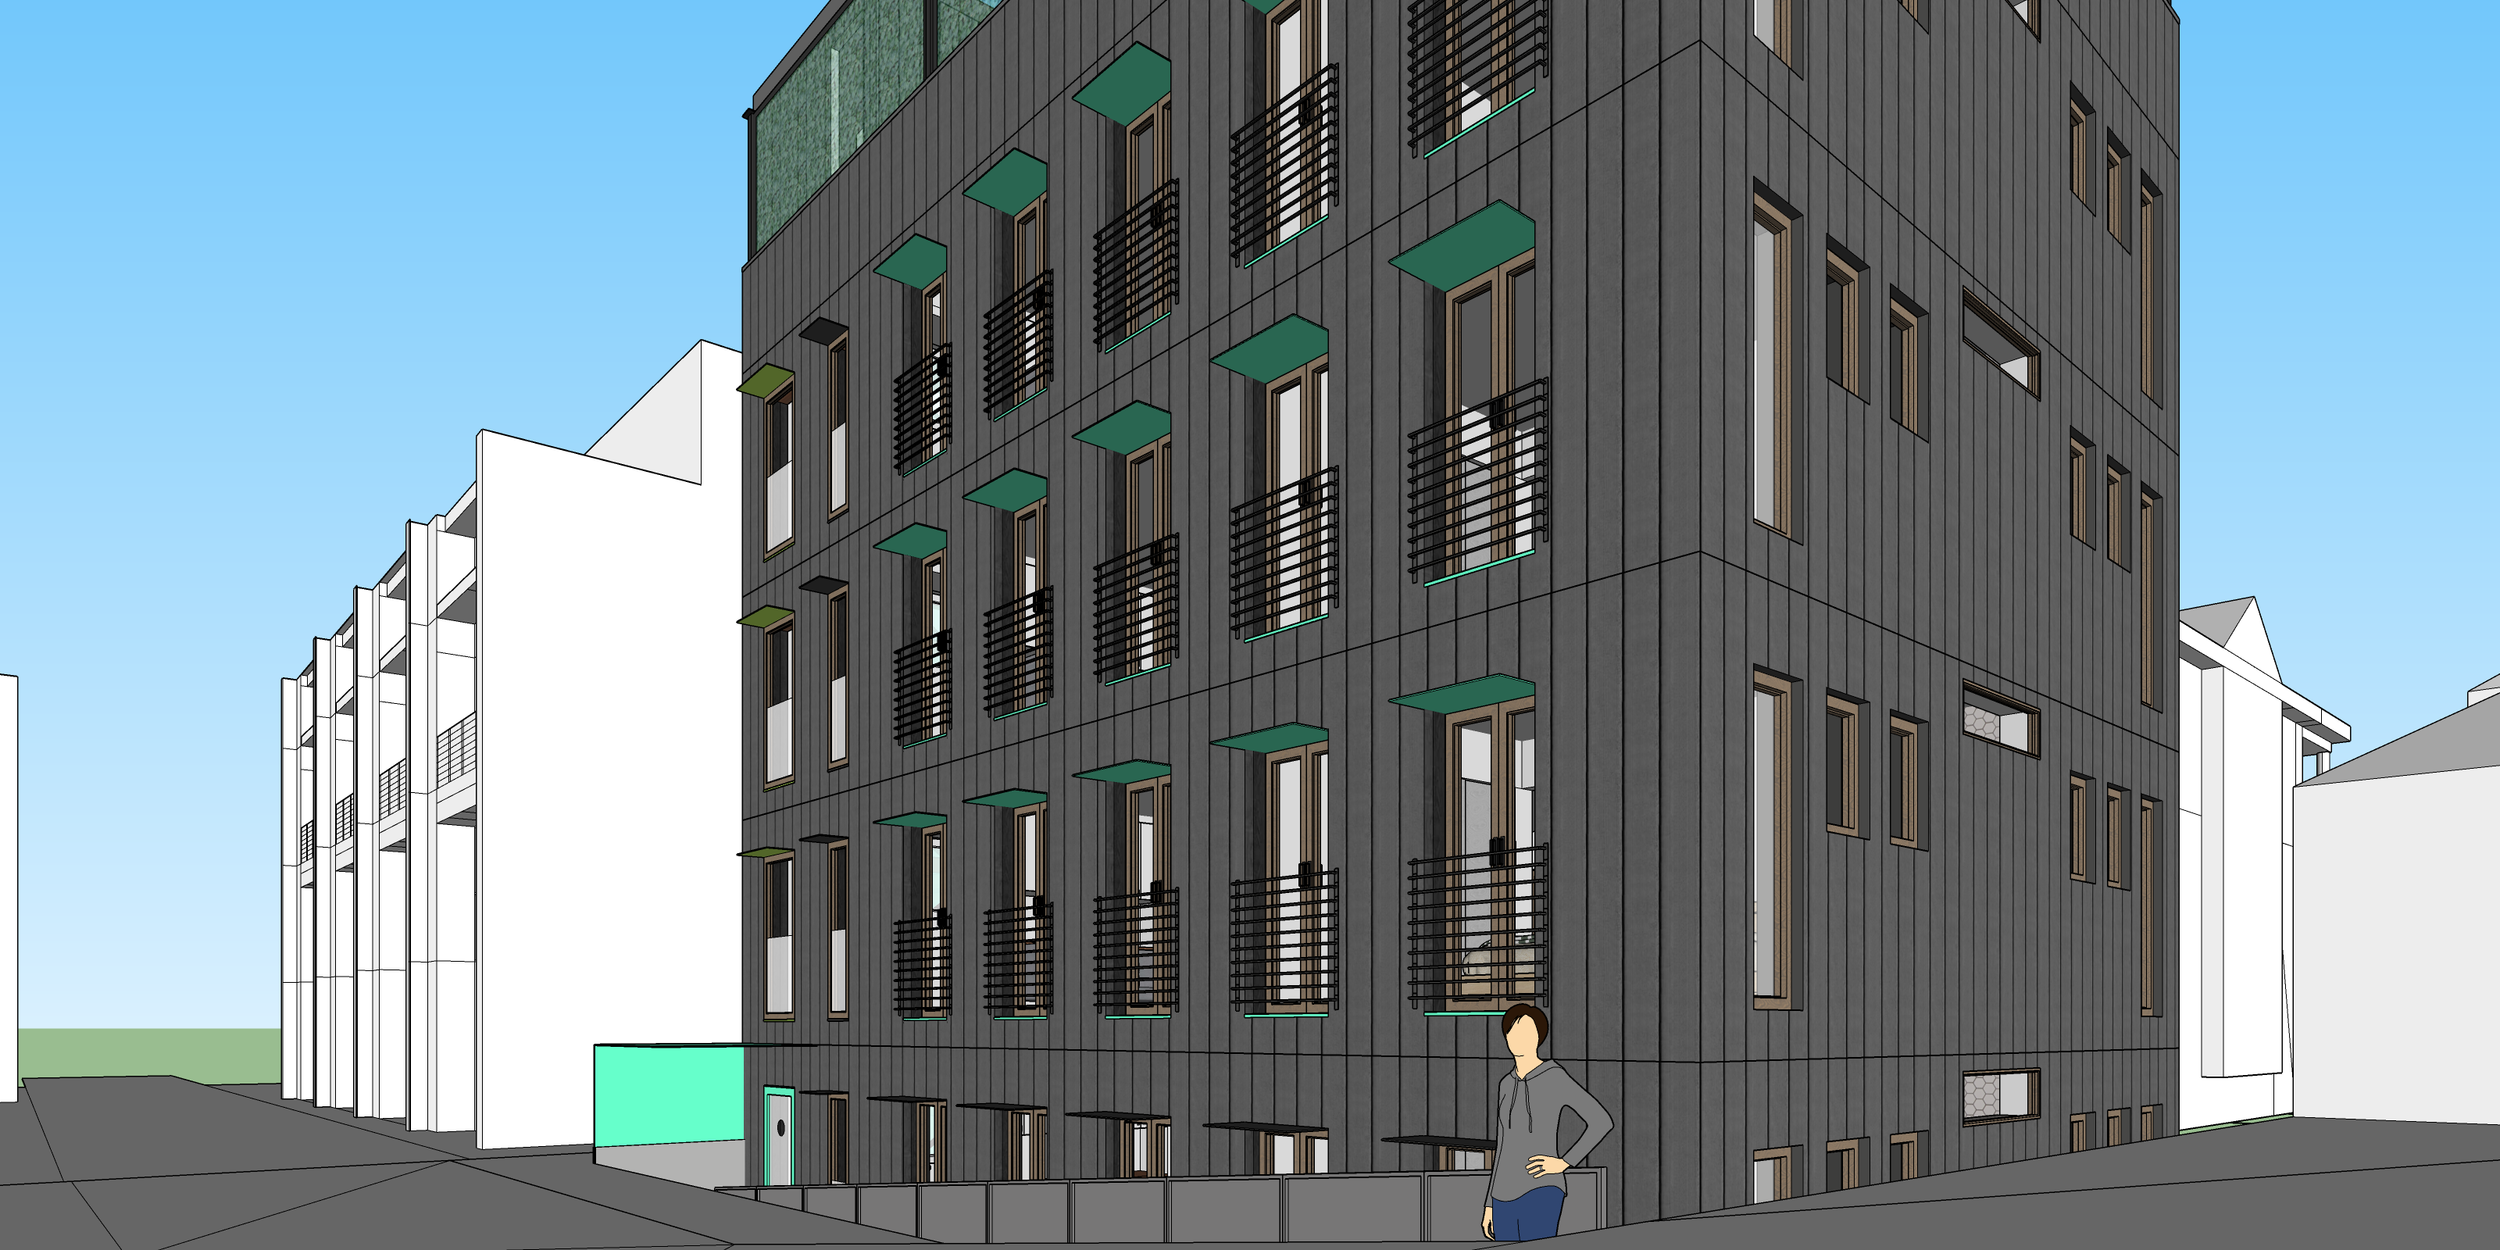 APARTMENT image 2 .png